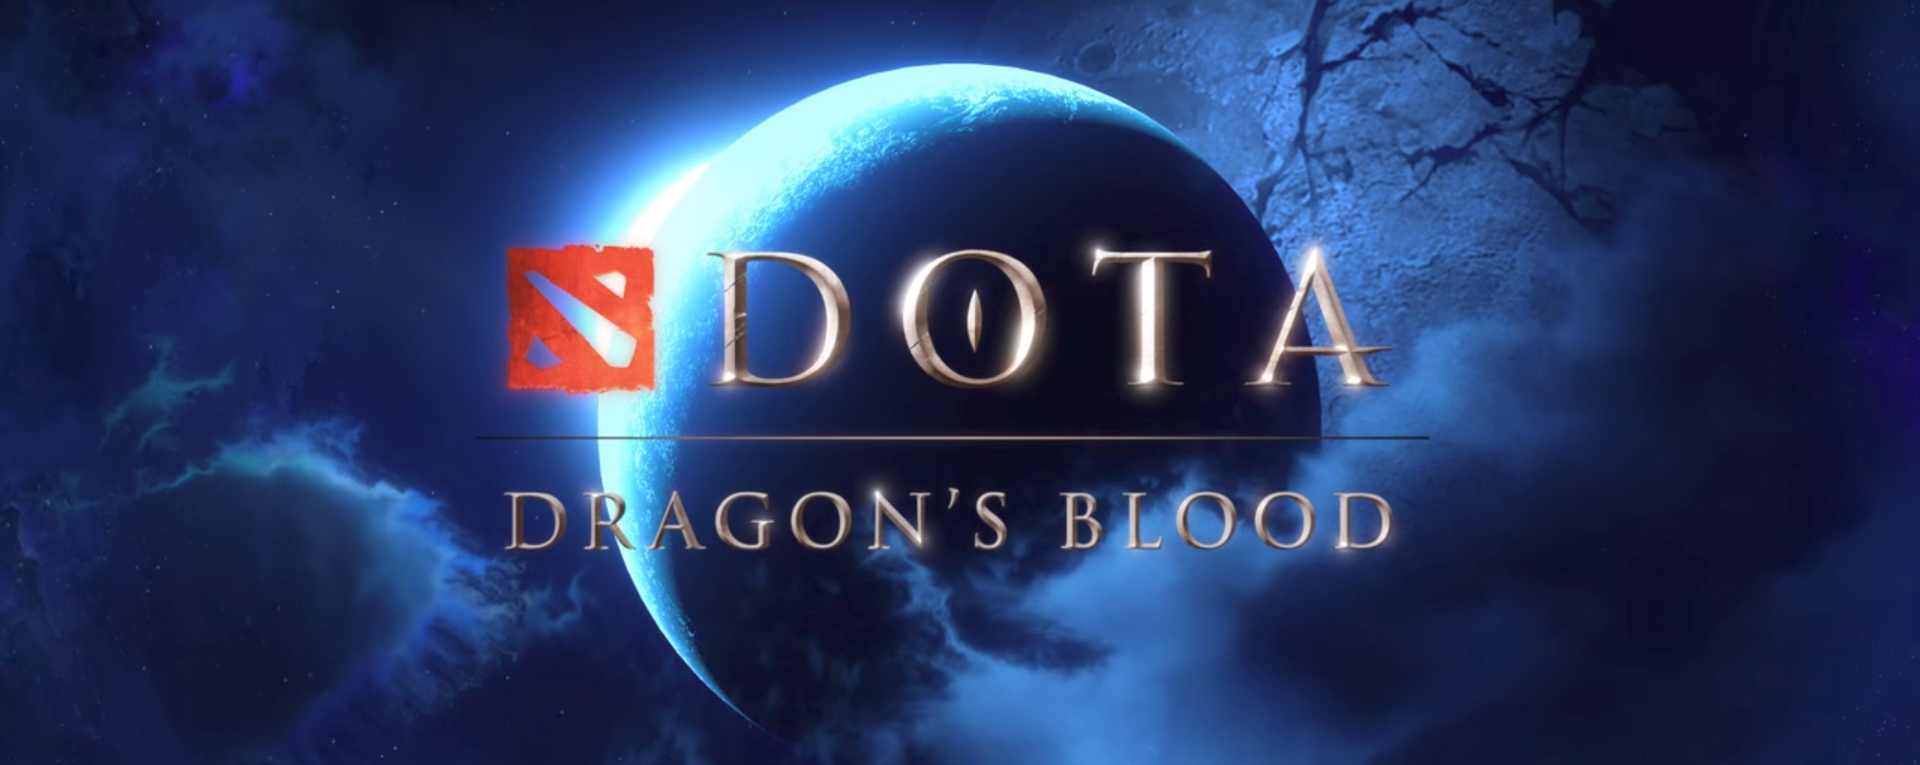 DOTA: Dragon's Blood. Image Credit: Netflix.